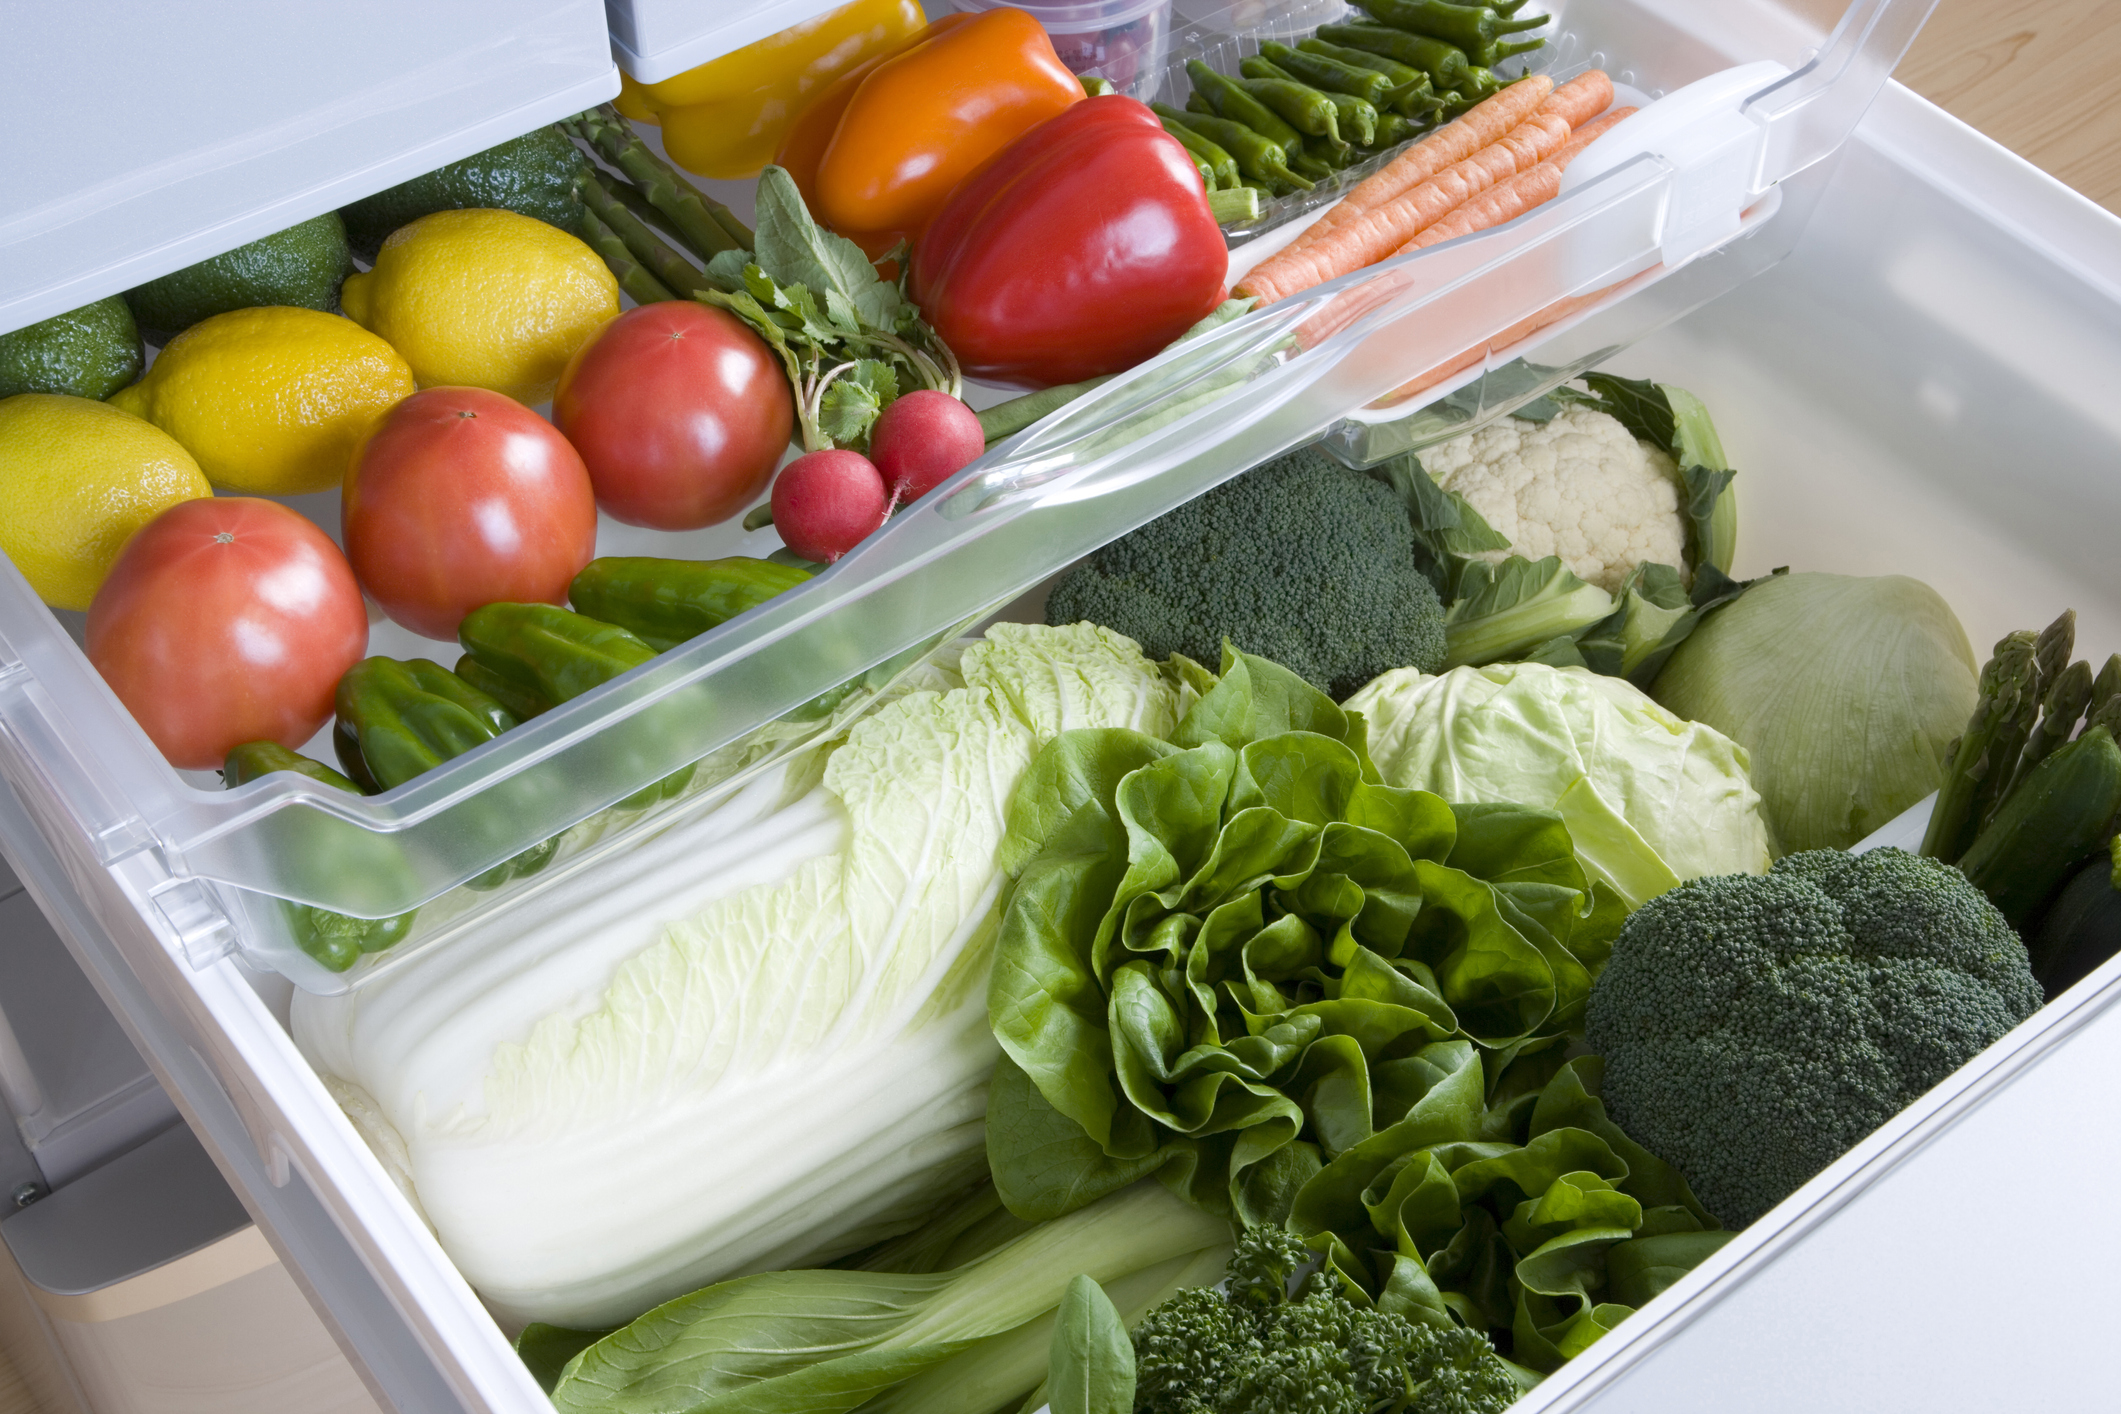 fridge drawers with fruits and veggies